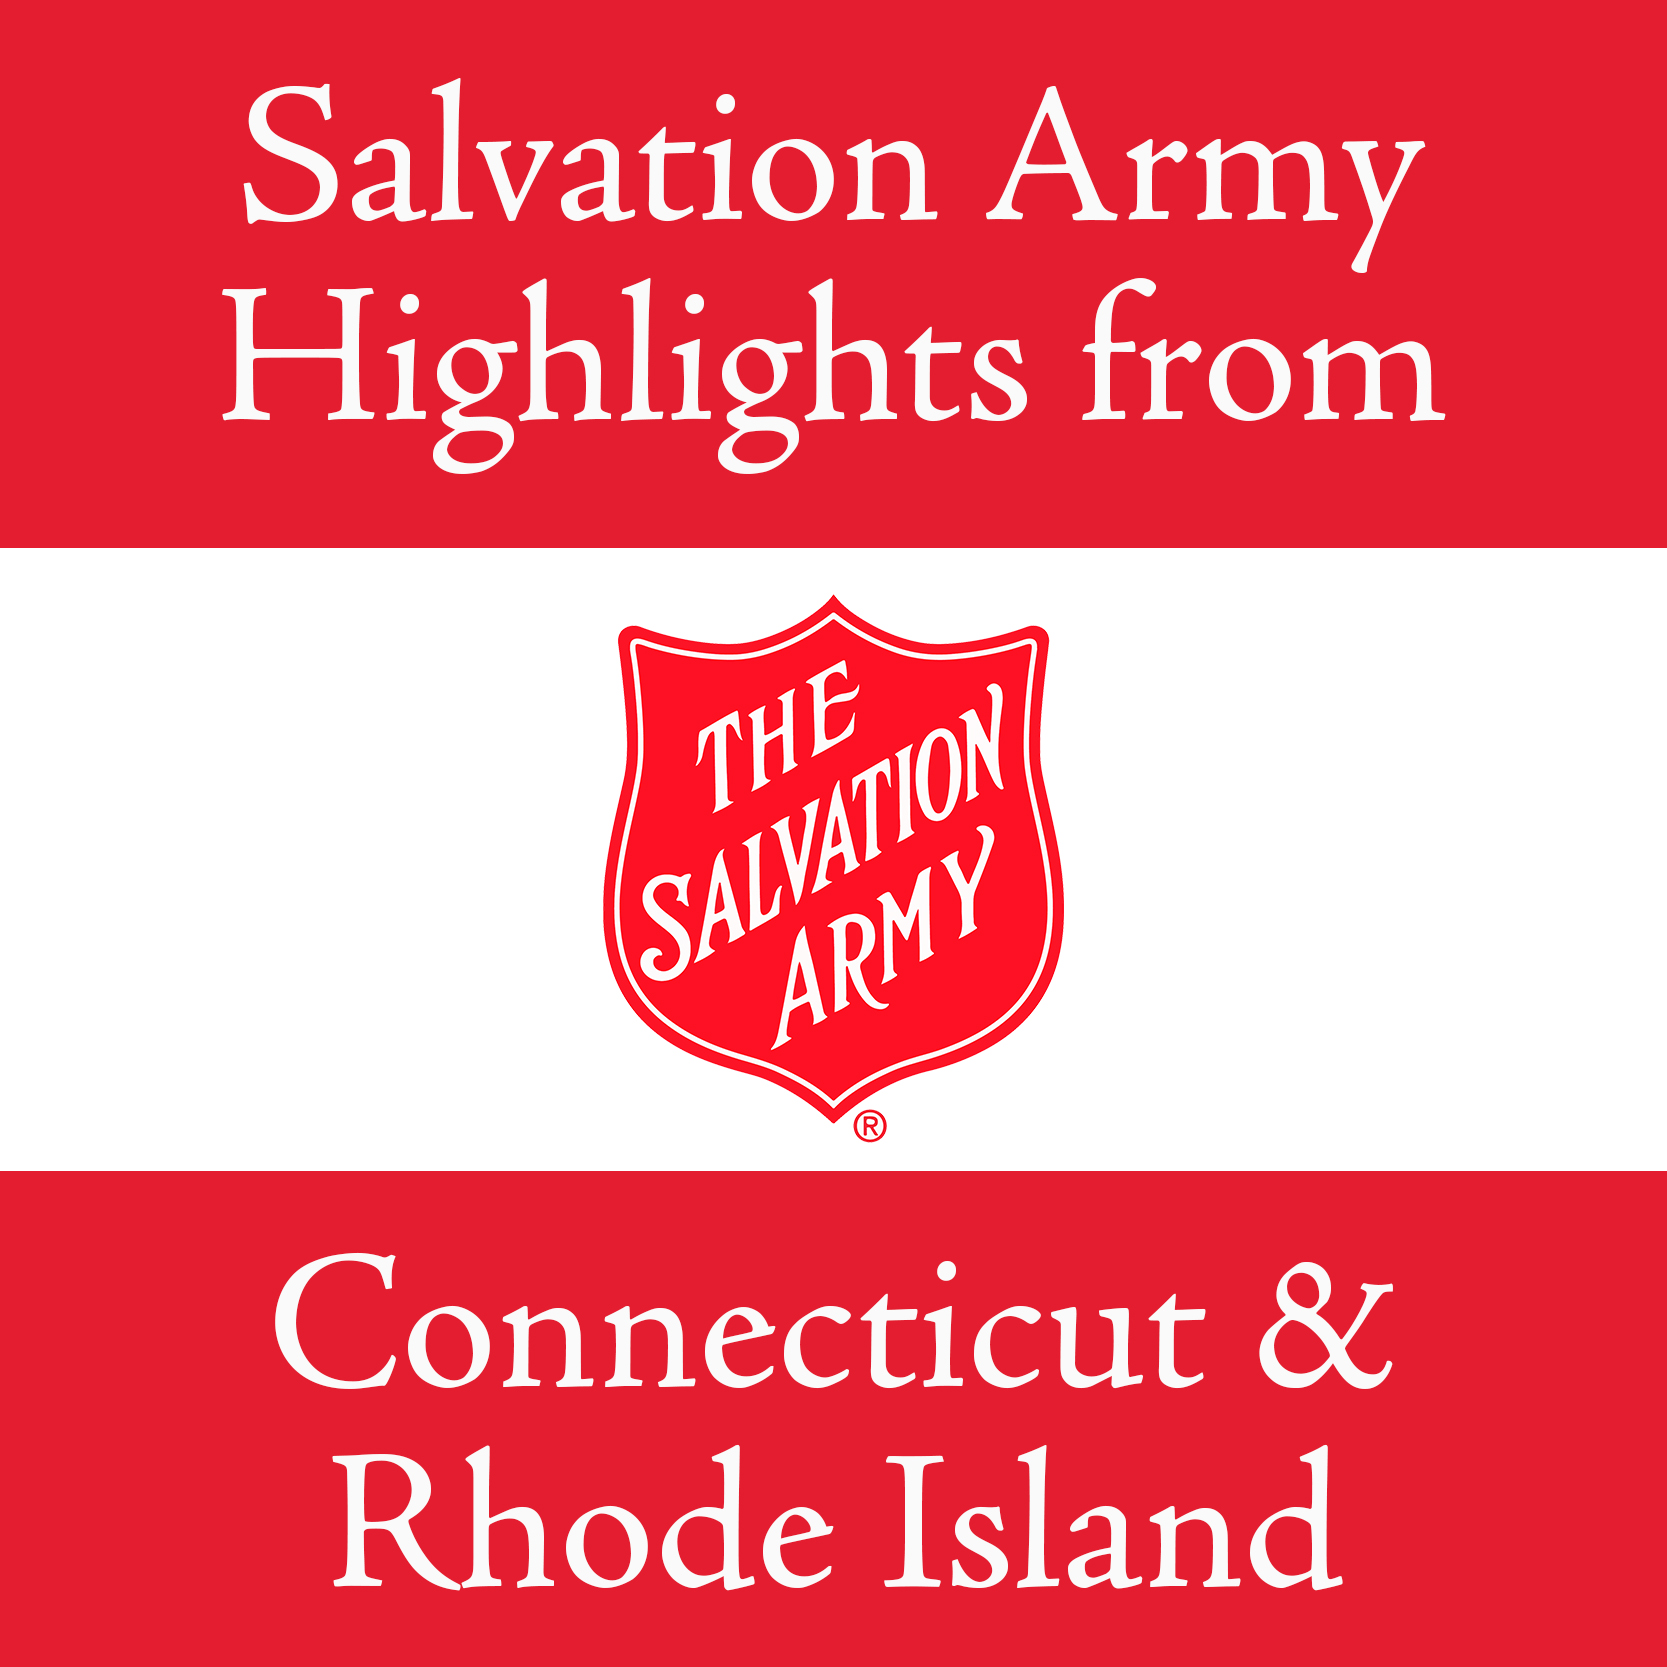 The Salvation Army mobilizes in communities across Connecticut and Rhode Island to combat COVID-19 Crisis